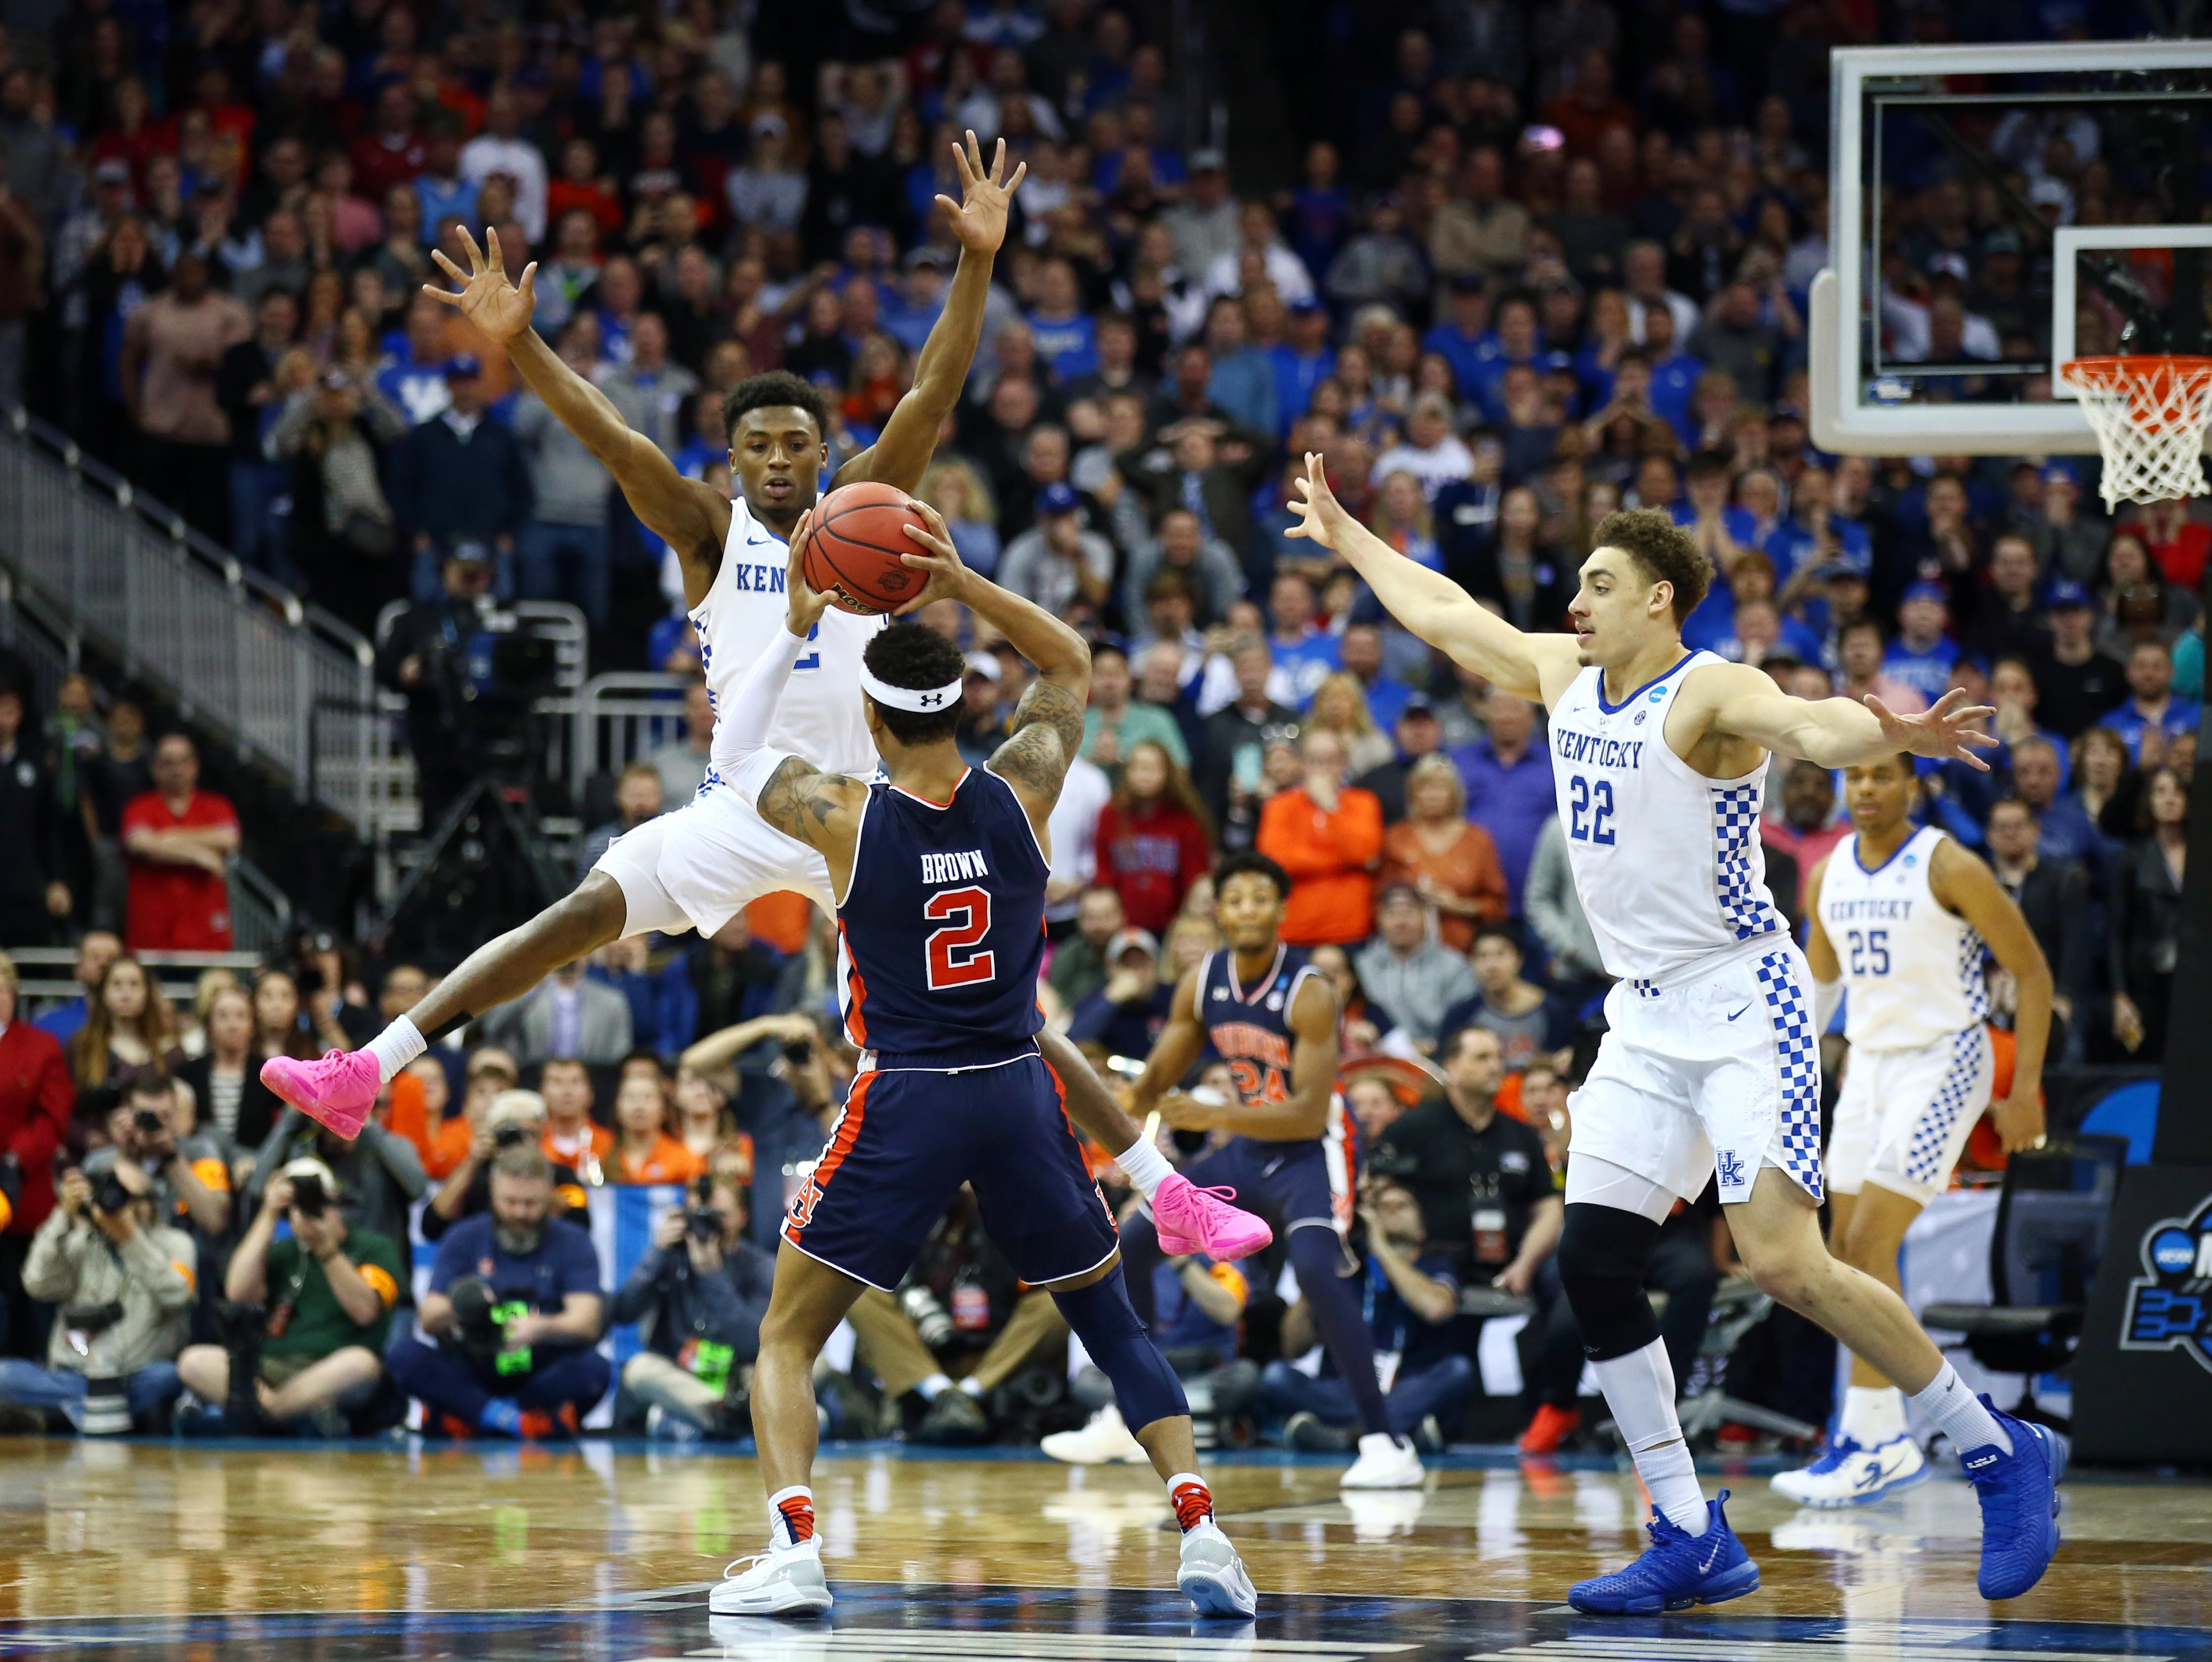 Mar 31, 2019; Kansas City, MO, United States; Auburn Tigers guard Bryce Brown (2) is defended by Kentucky Wildcats guard Ashton Hagans (2) and forward Reid Travis (22) during the second half in the championship game of the midwest regional of the 2019 NCAA Tournament at Sprint Center. Mandatory Credit: Jay Biggerstaff-USA TODAY Sports